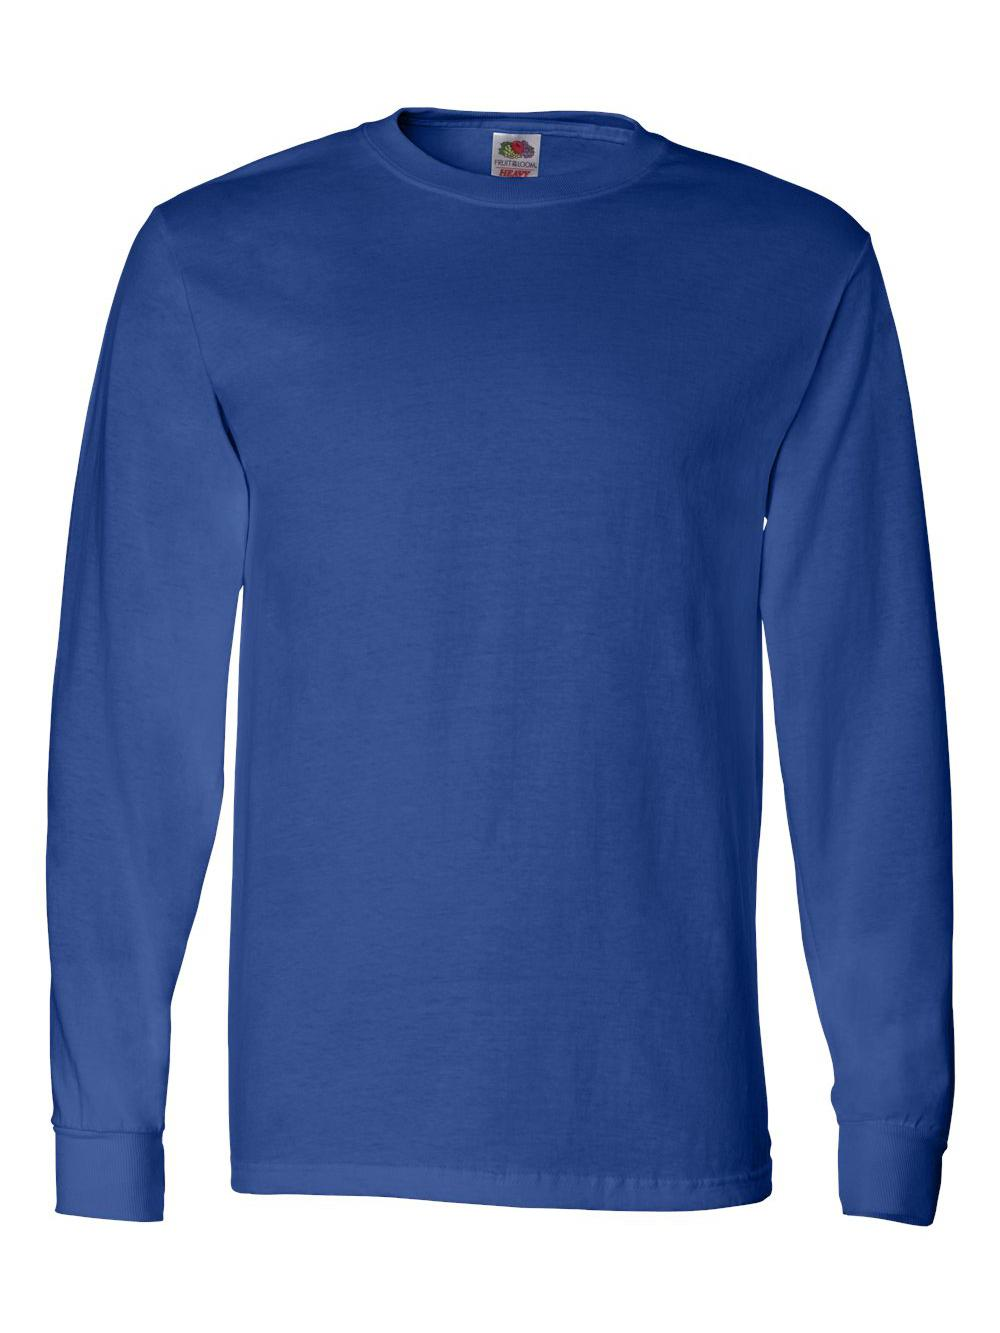 Fruit-of-the-Loom-HD-Cotton-Long-Sleeve-T-Shirt-4930R thumbnail 69